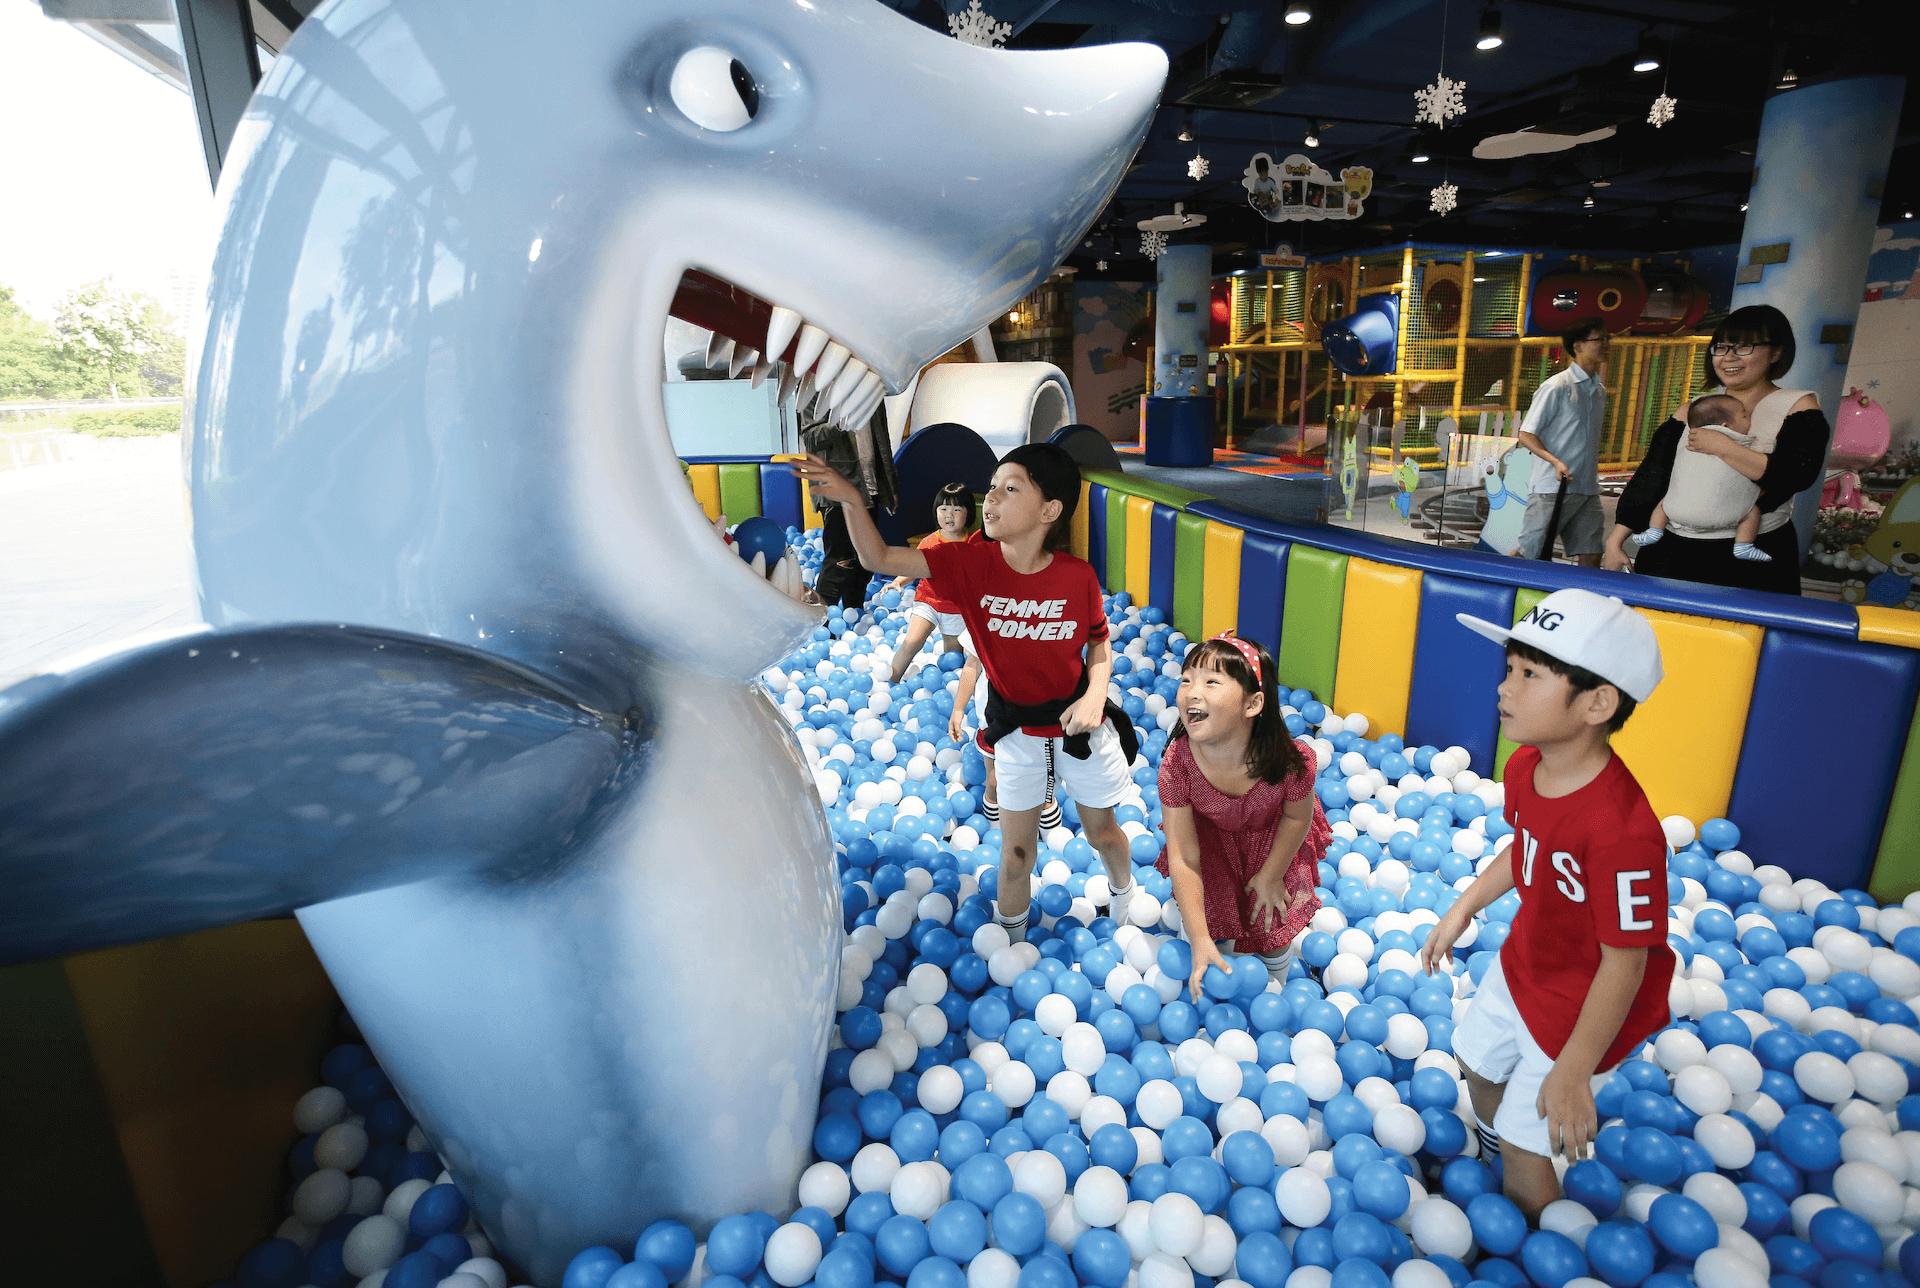 Shark Ball Pool Attraction at Pororo Park Singapore